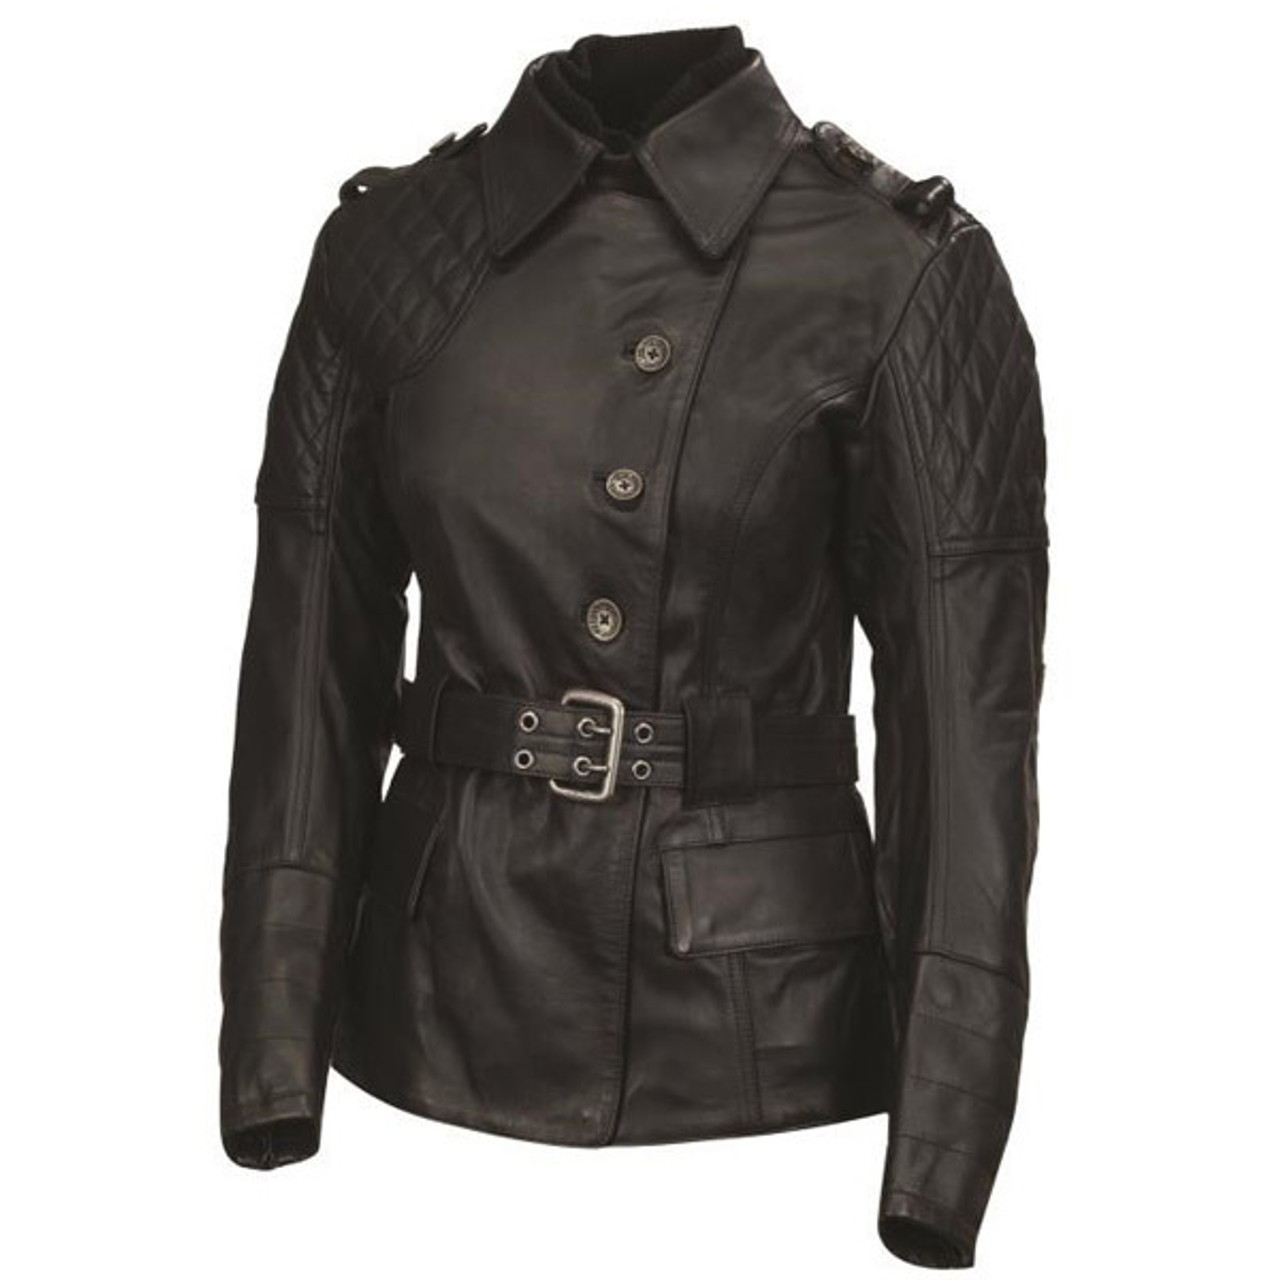 d85a841b Roland Sands Womens Oxford Leather Jacket - Sportbike Track Gear